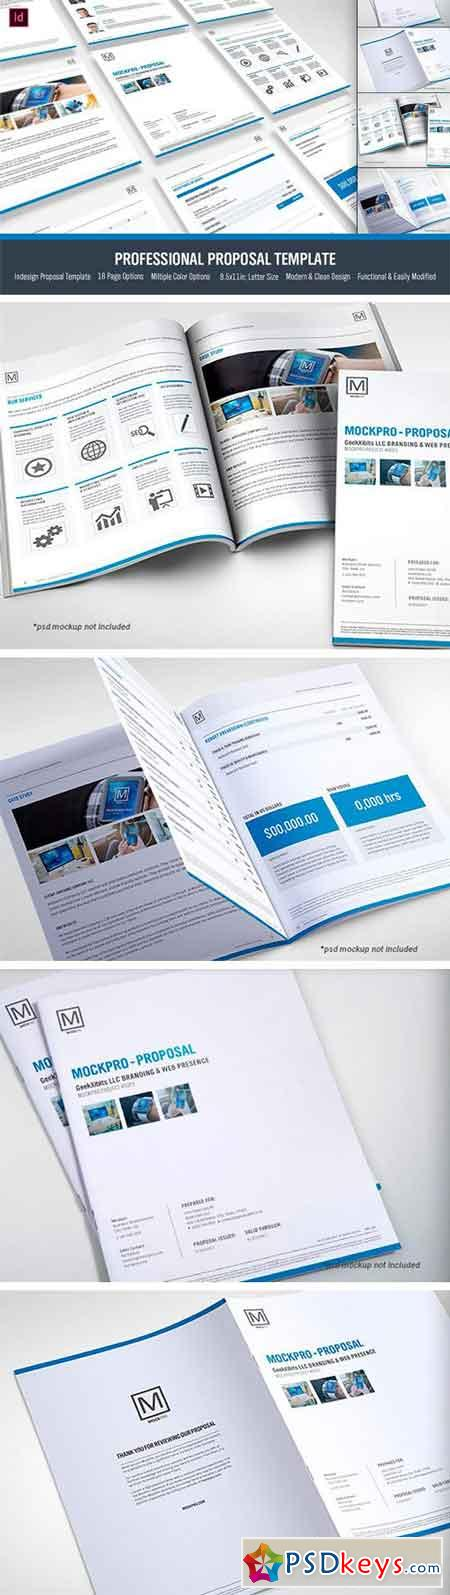 Simple Proposal Template Indesign 2294901